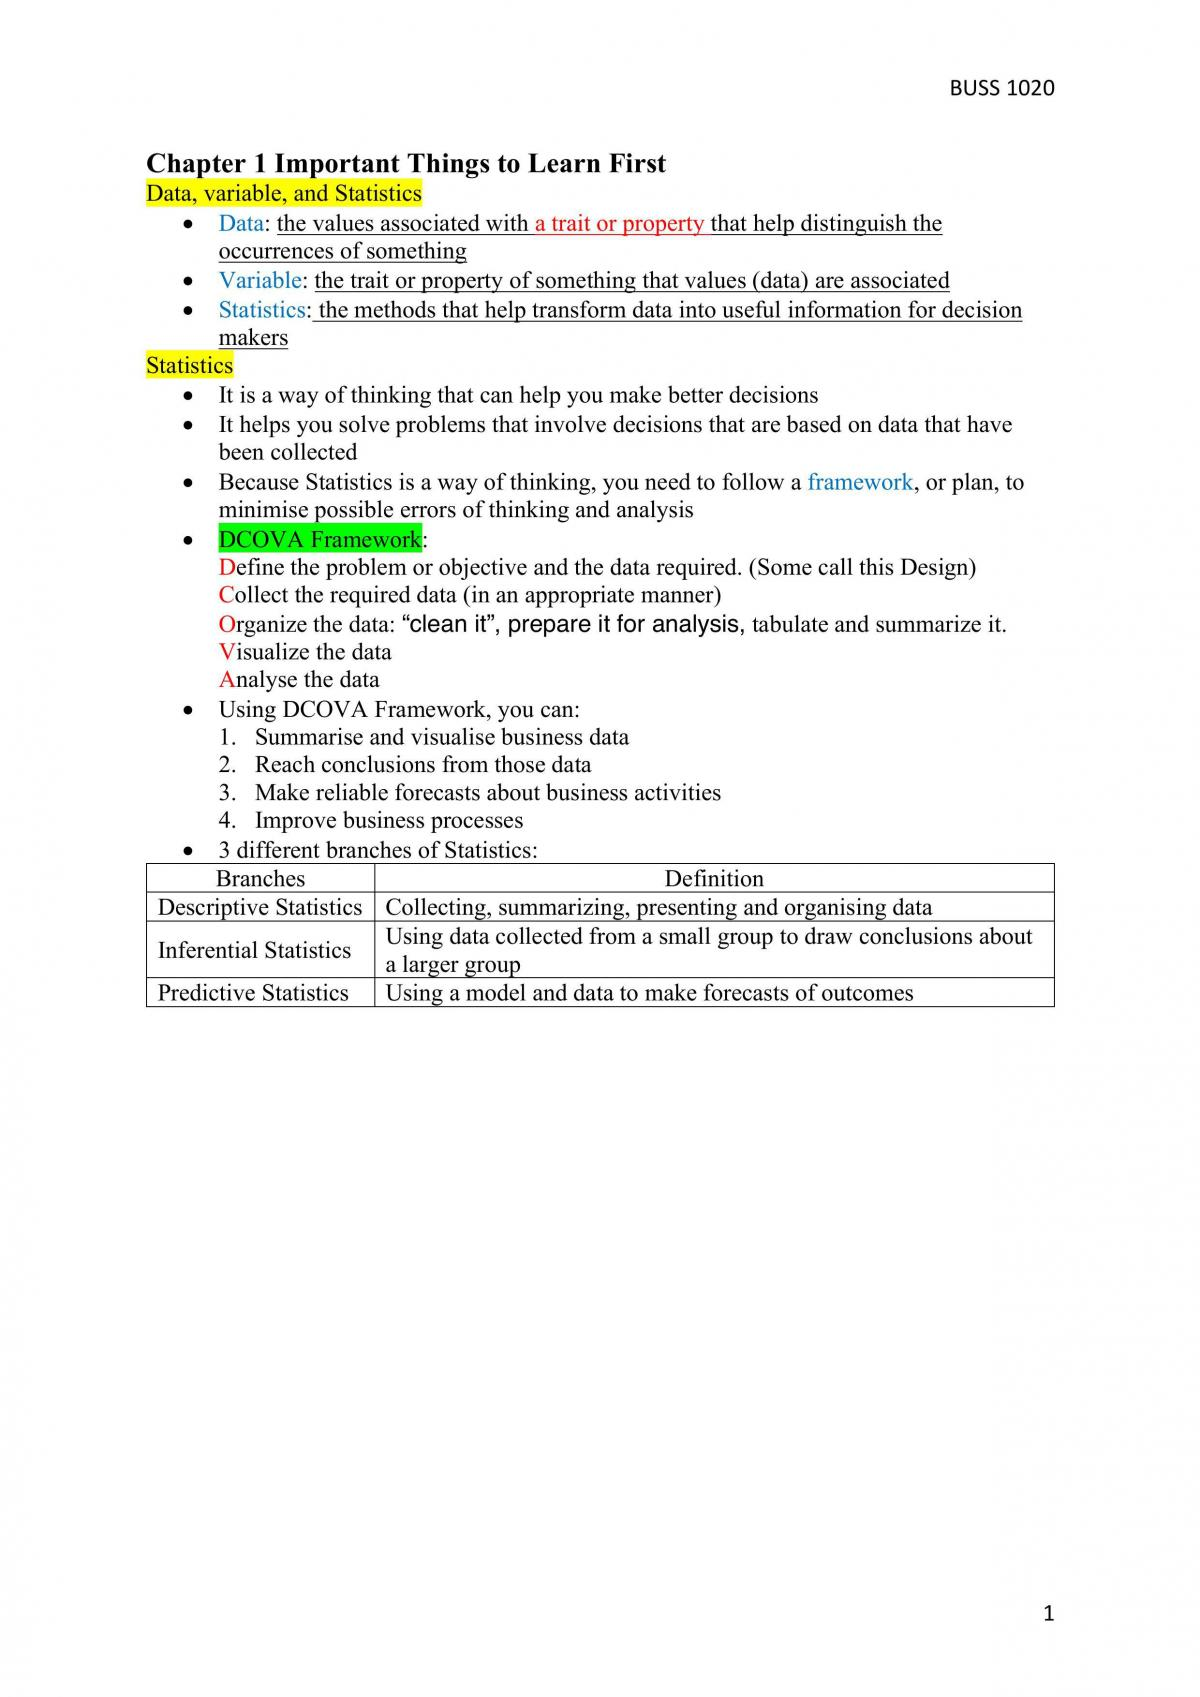 Complete Revision Notes - BUSS1020 - Page 1